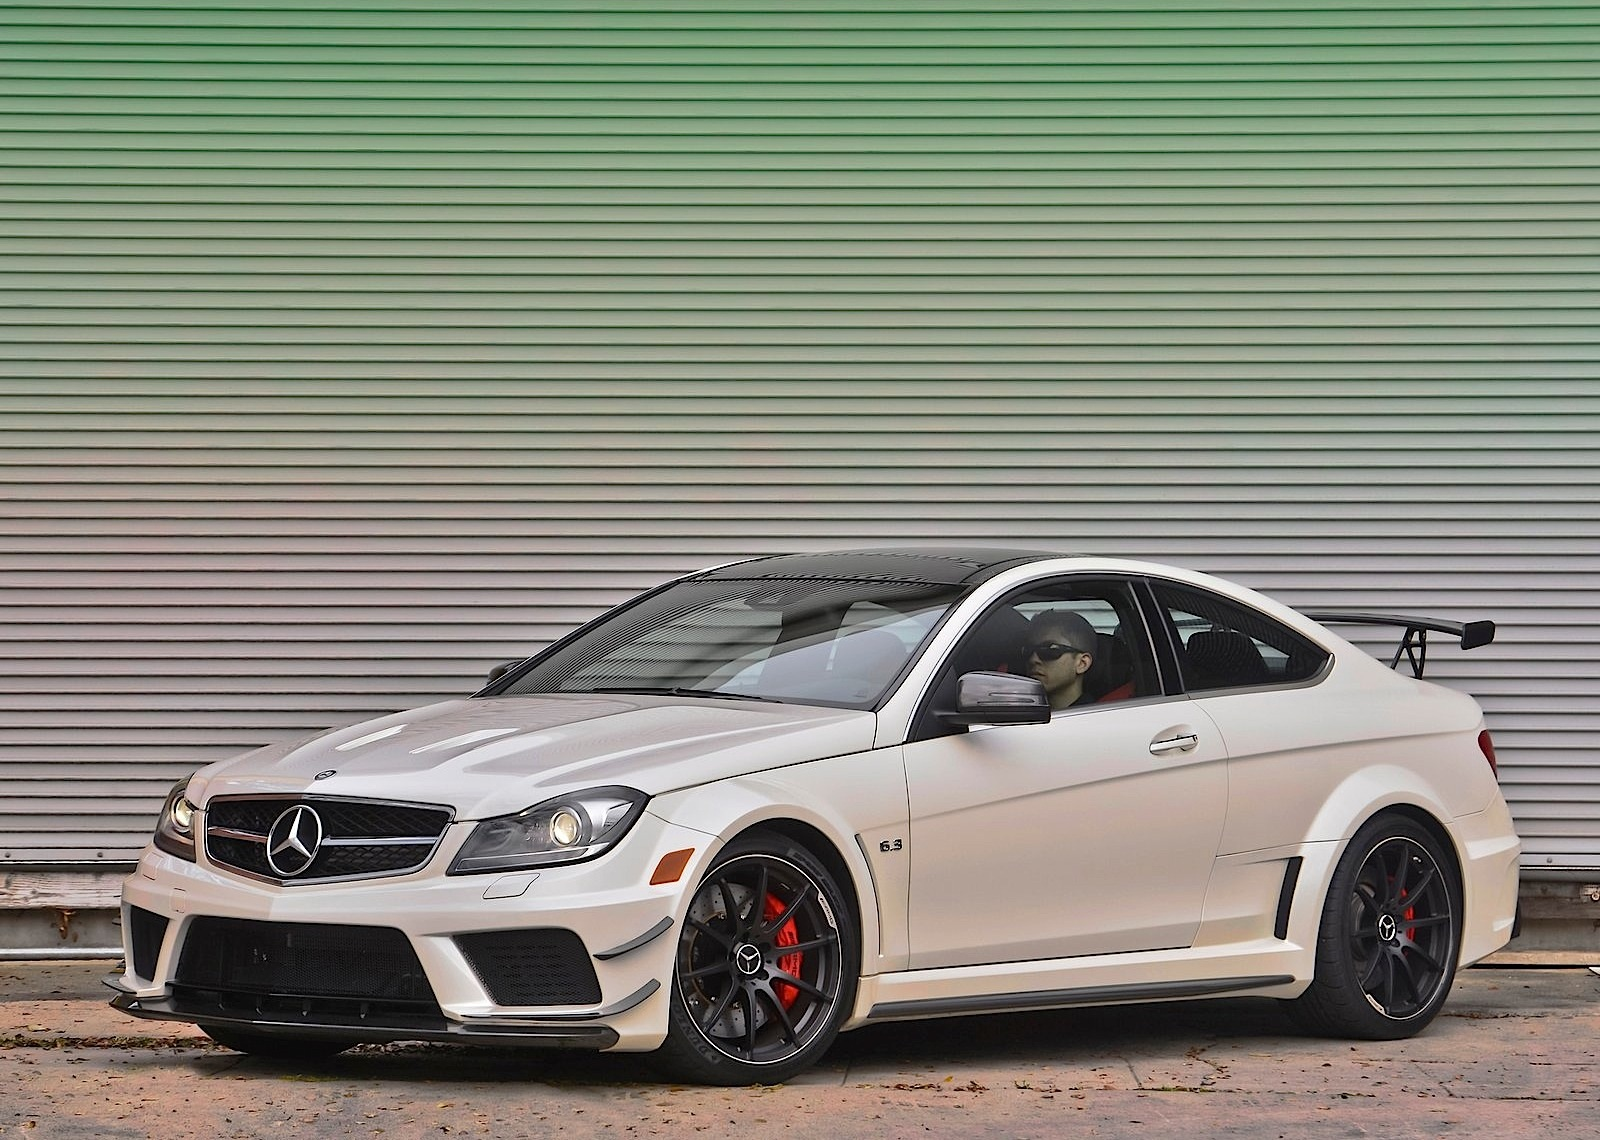 mercedes c63 amg black series coupe price. Black Bedroom Furniture Sets. Home Design Ideas